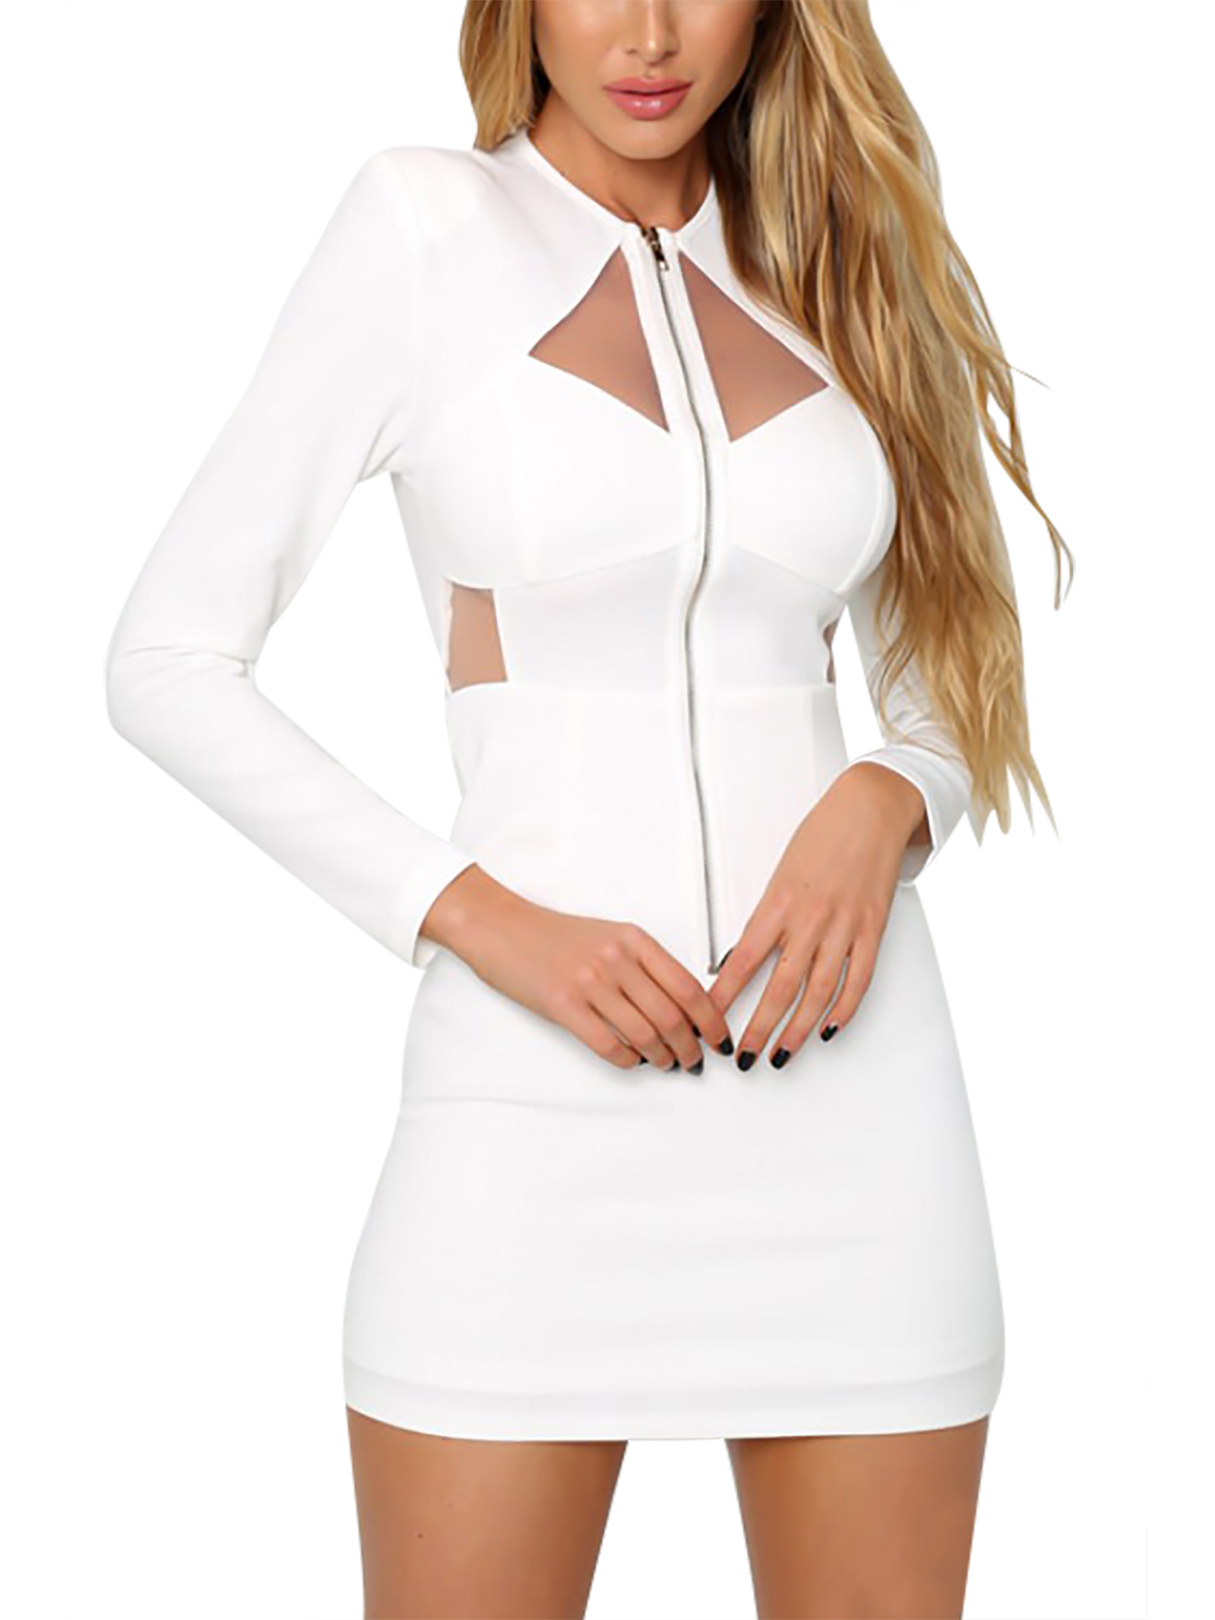 Long Sleeves Crew Neck Mini Party Dress with Cut Out Details